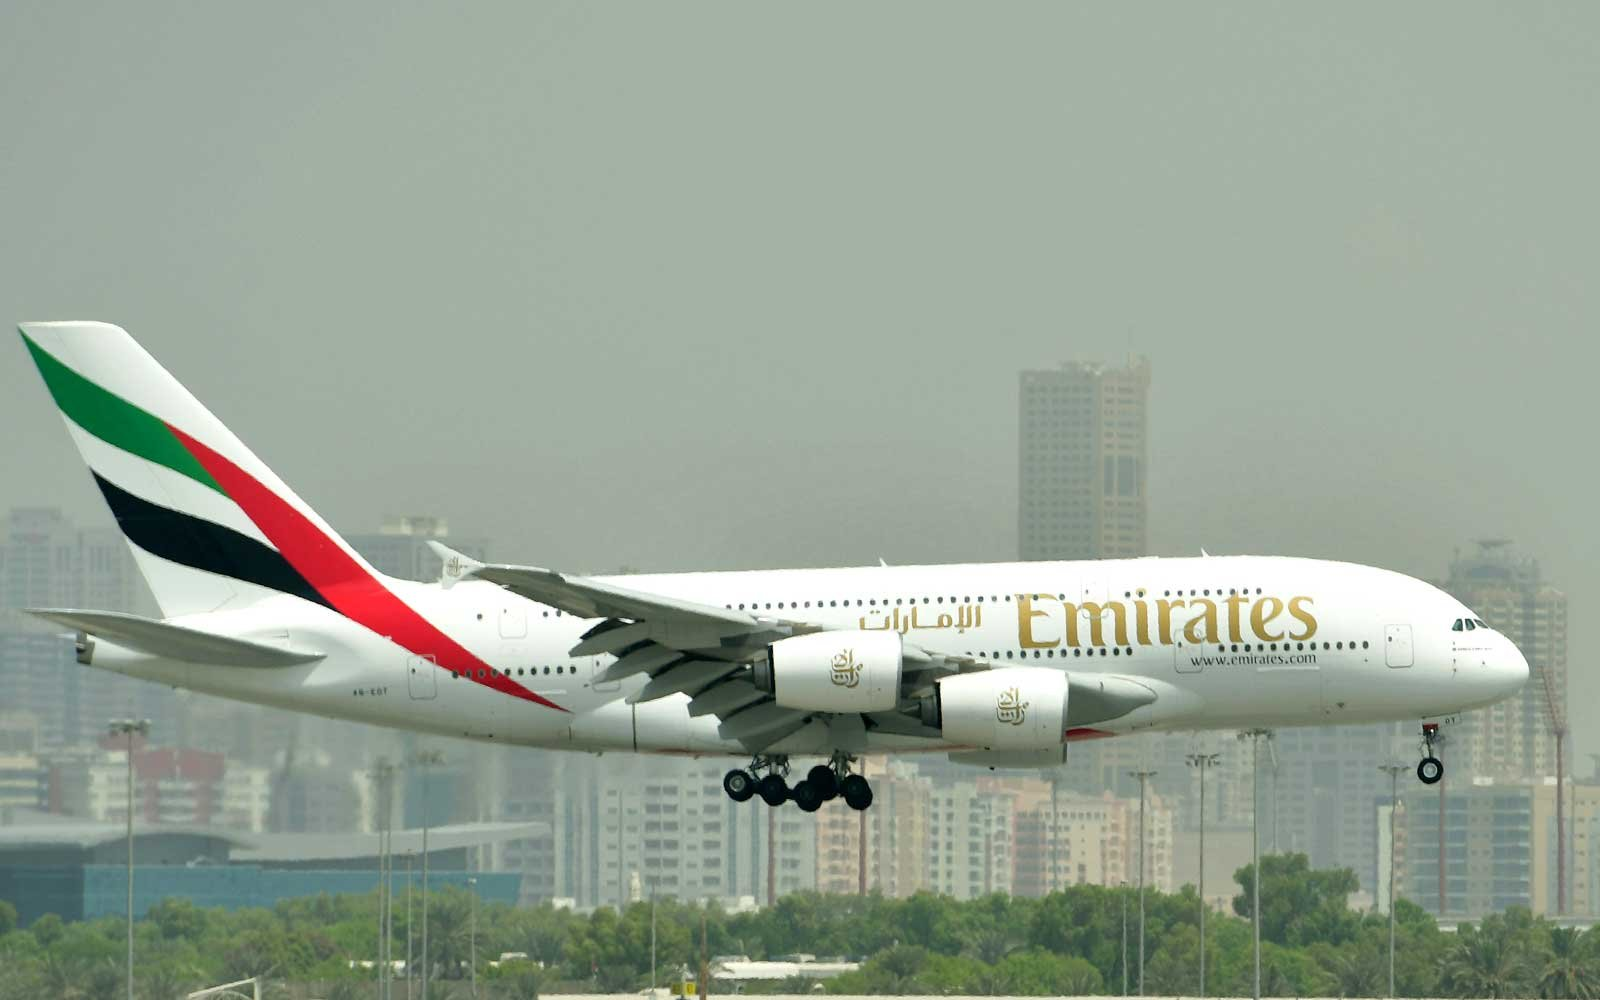 Emirates order ensures A380 production for 'at least 10 years'